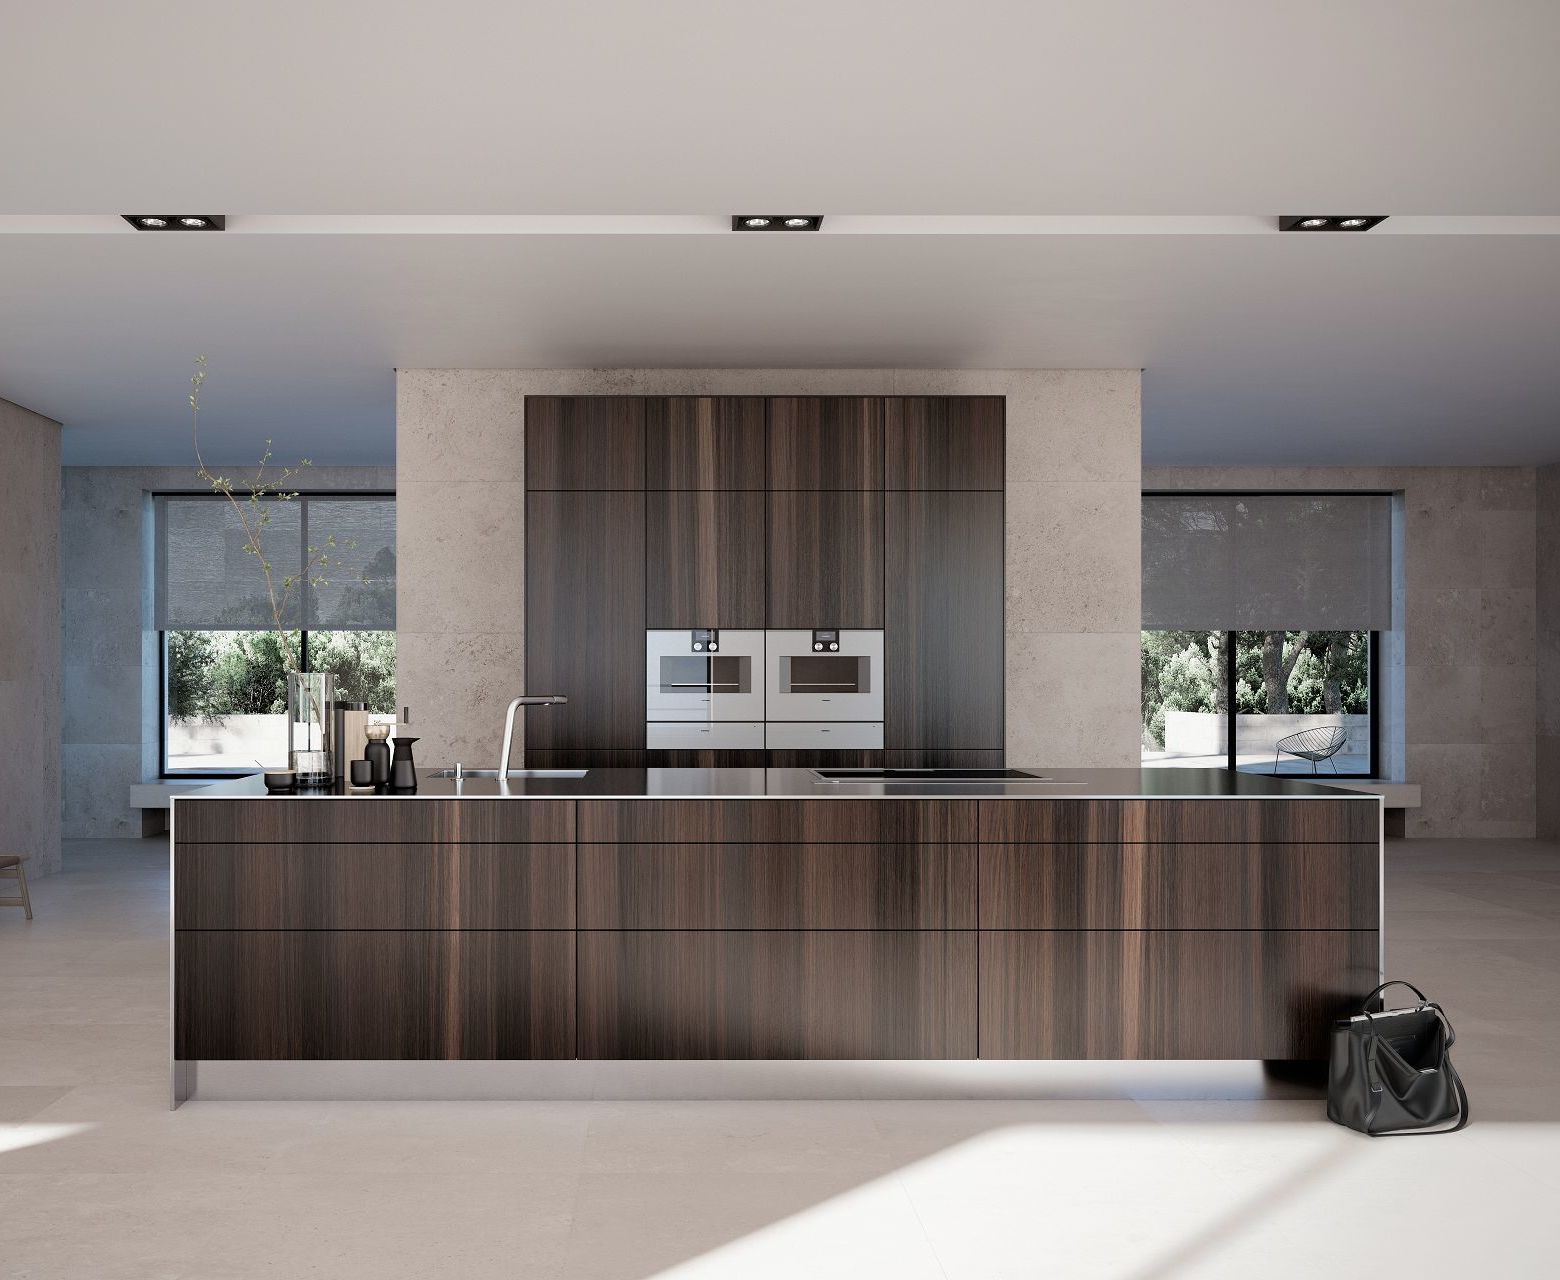 High End Kitchen Design Images High End Kitchens Of Elegance And Advanced Technology